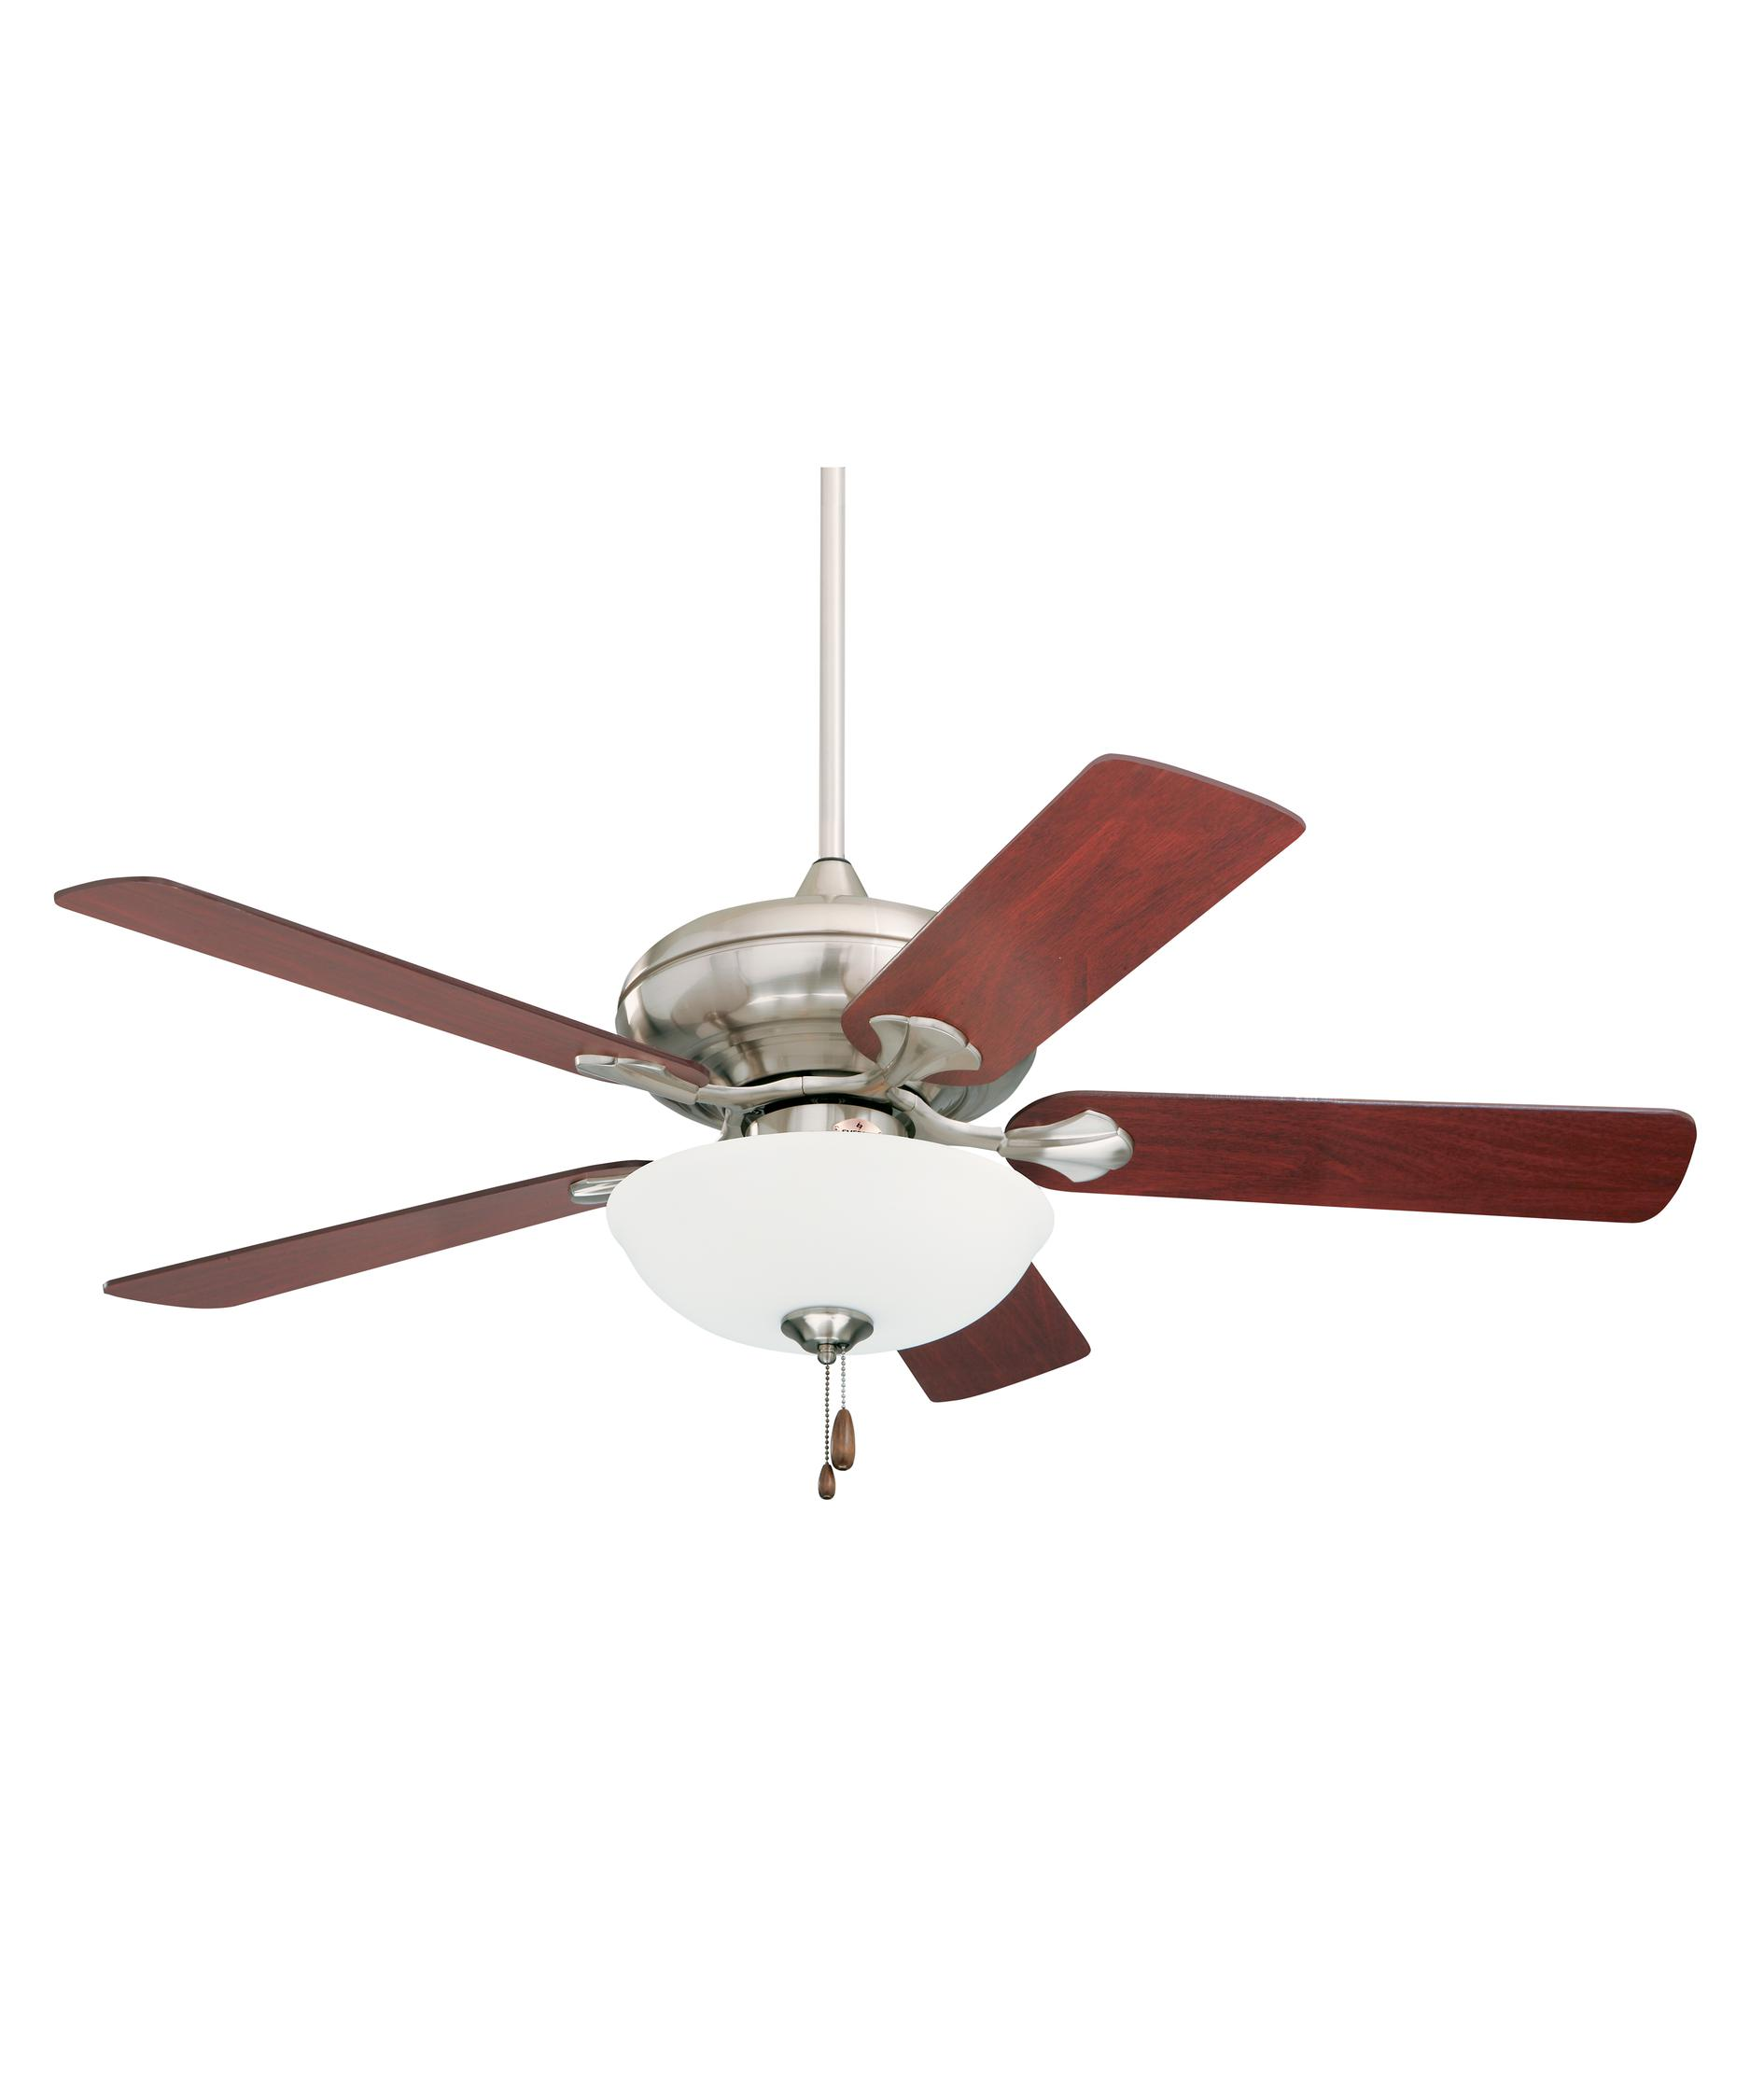 Emerson CF775 Spanish Bay 52 Inch Ceiling Fan With Light